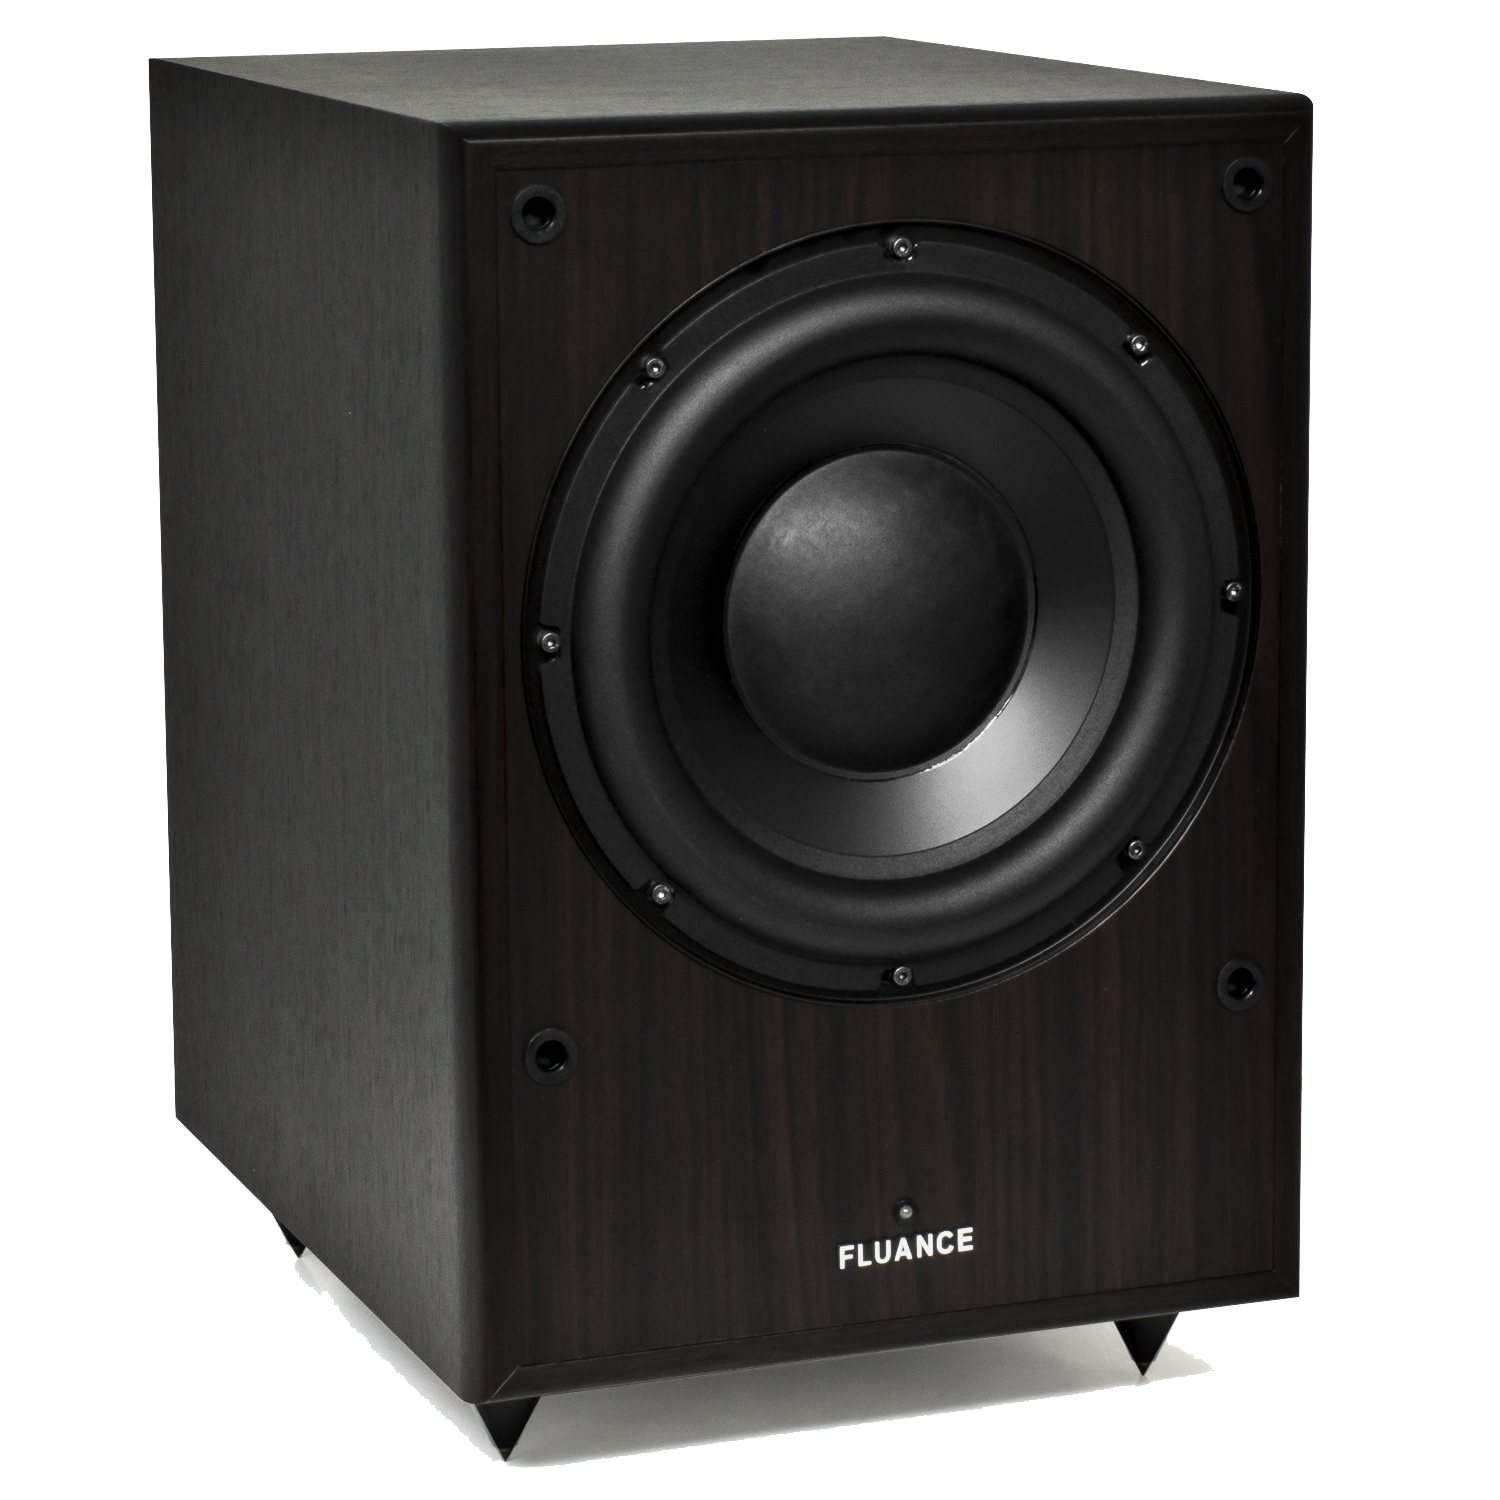 DB150 10 inch 150 Watt Low Frequency Powered Subwoofer - Dark Walnut